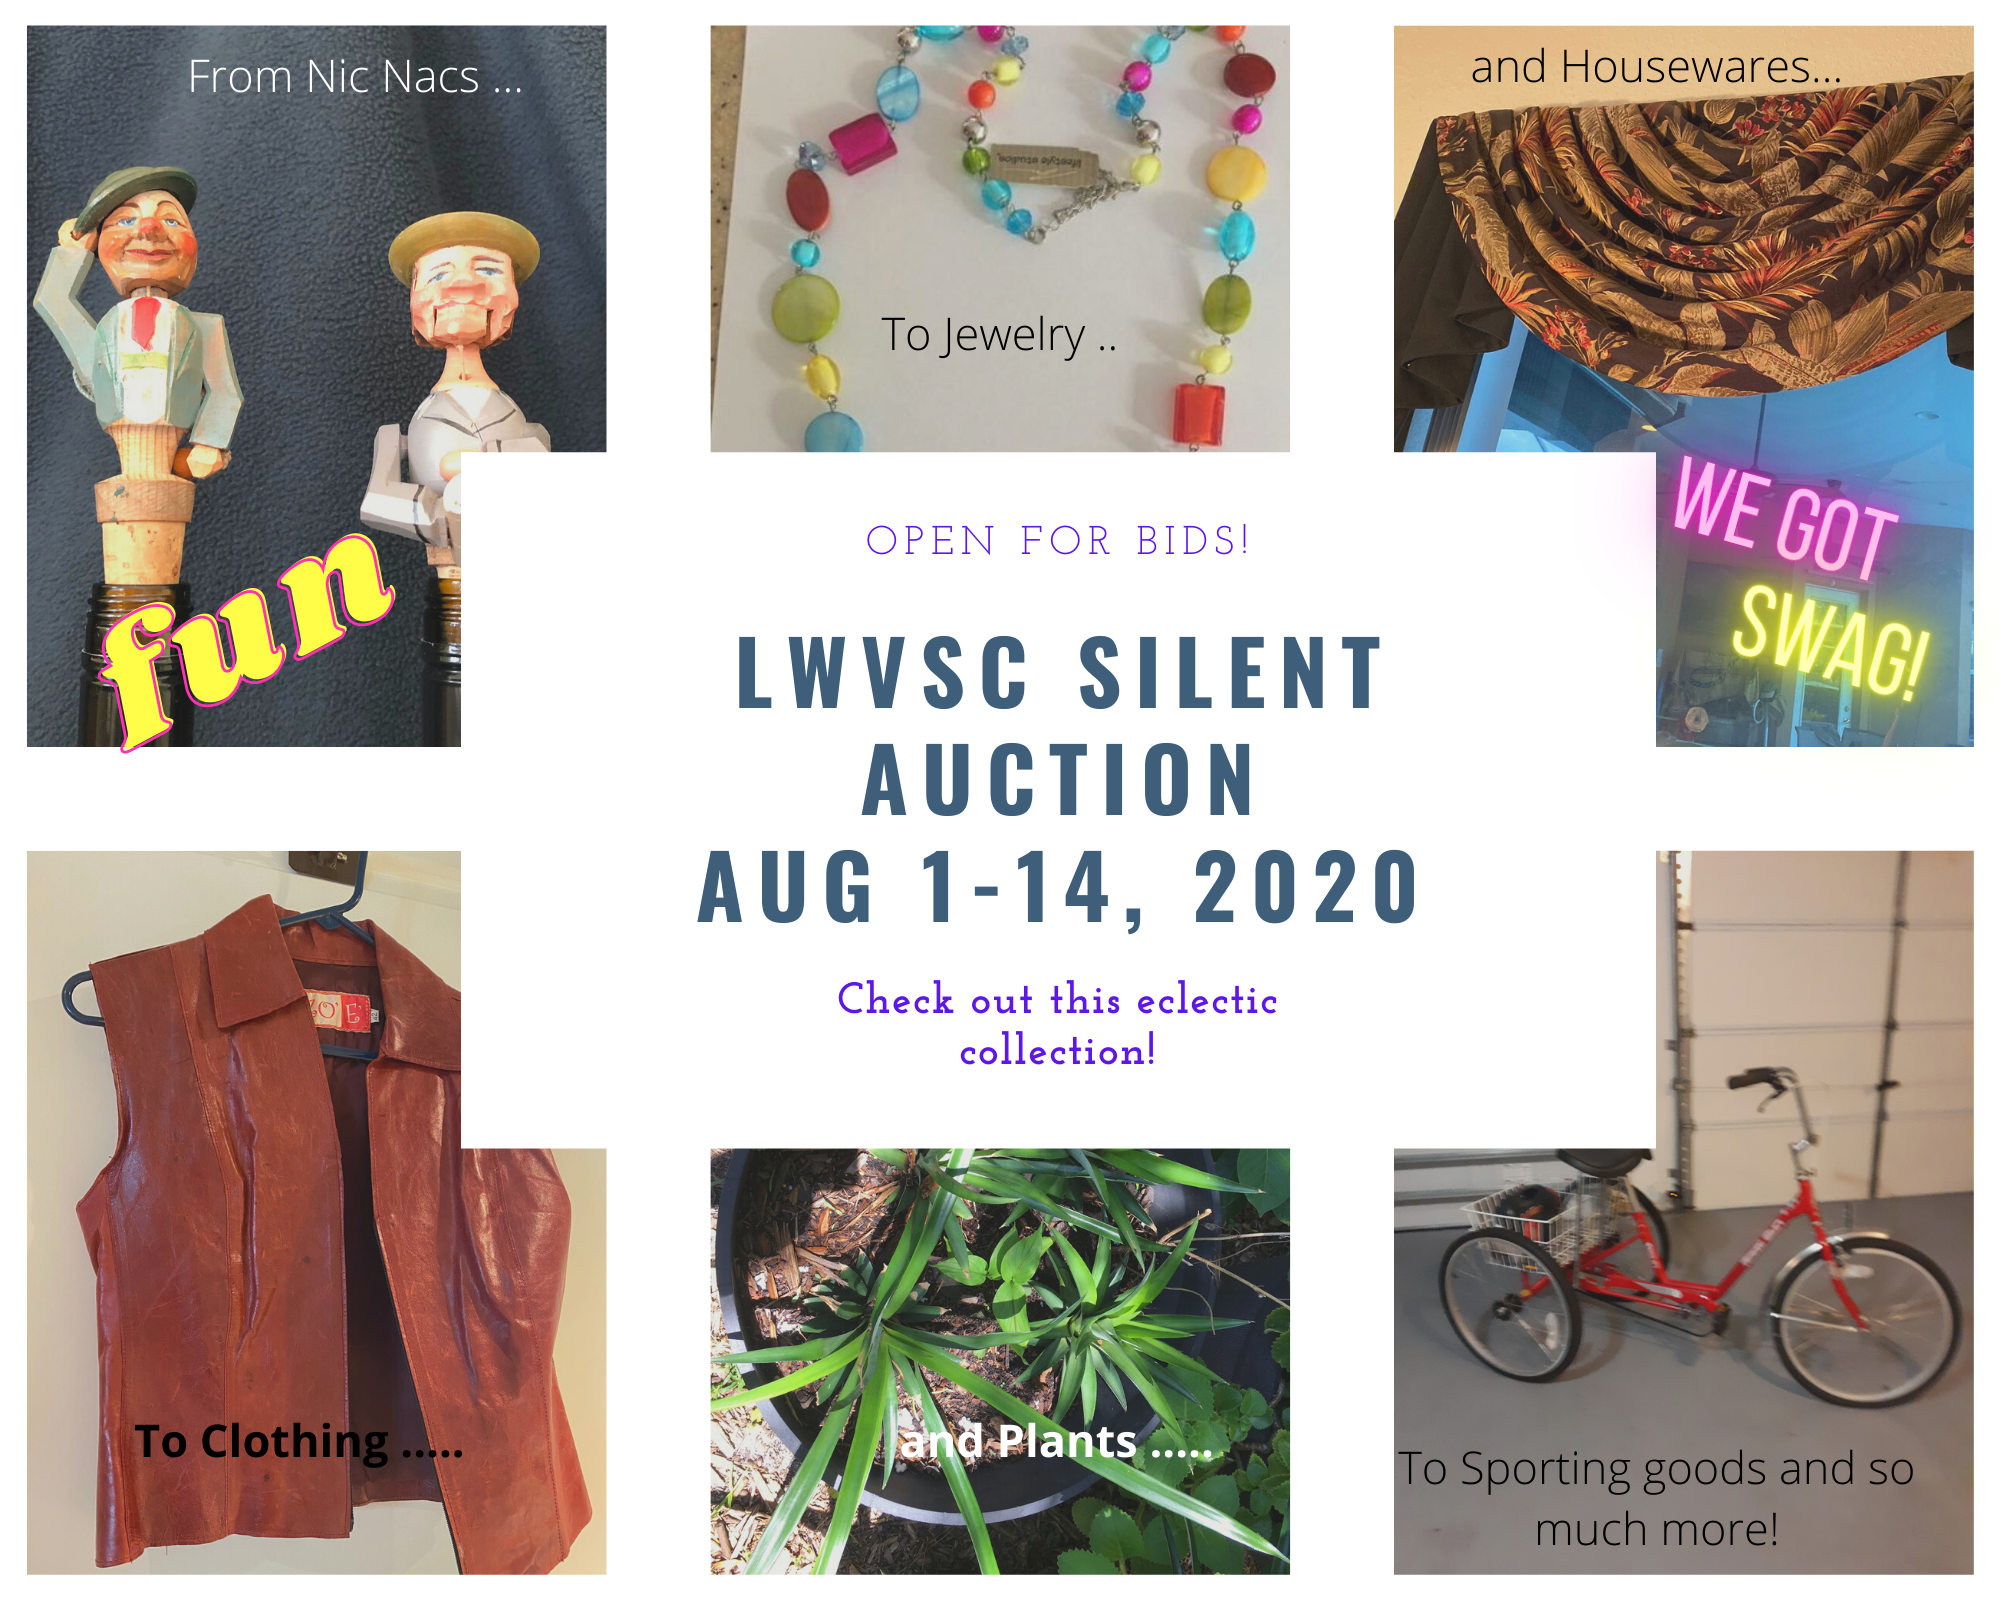 LWVSC 2020 Silent Auction Fundraiser is OPEN for Bids!